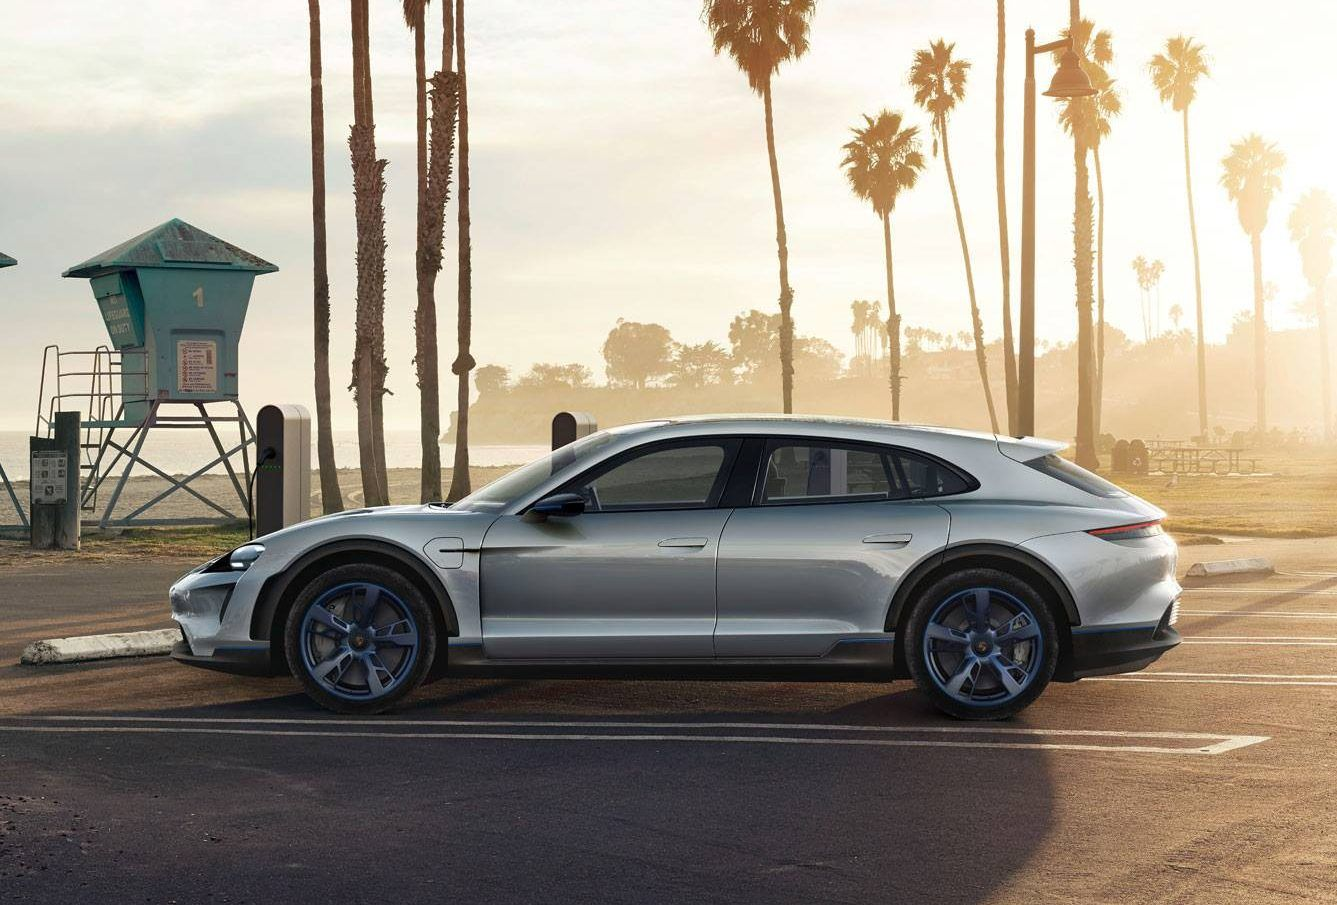 The Porsche Taycan Cross Turismo launched at the end of